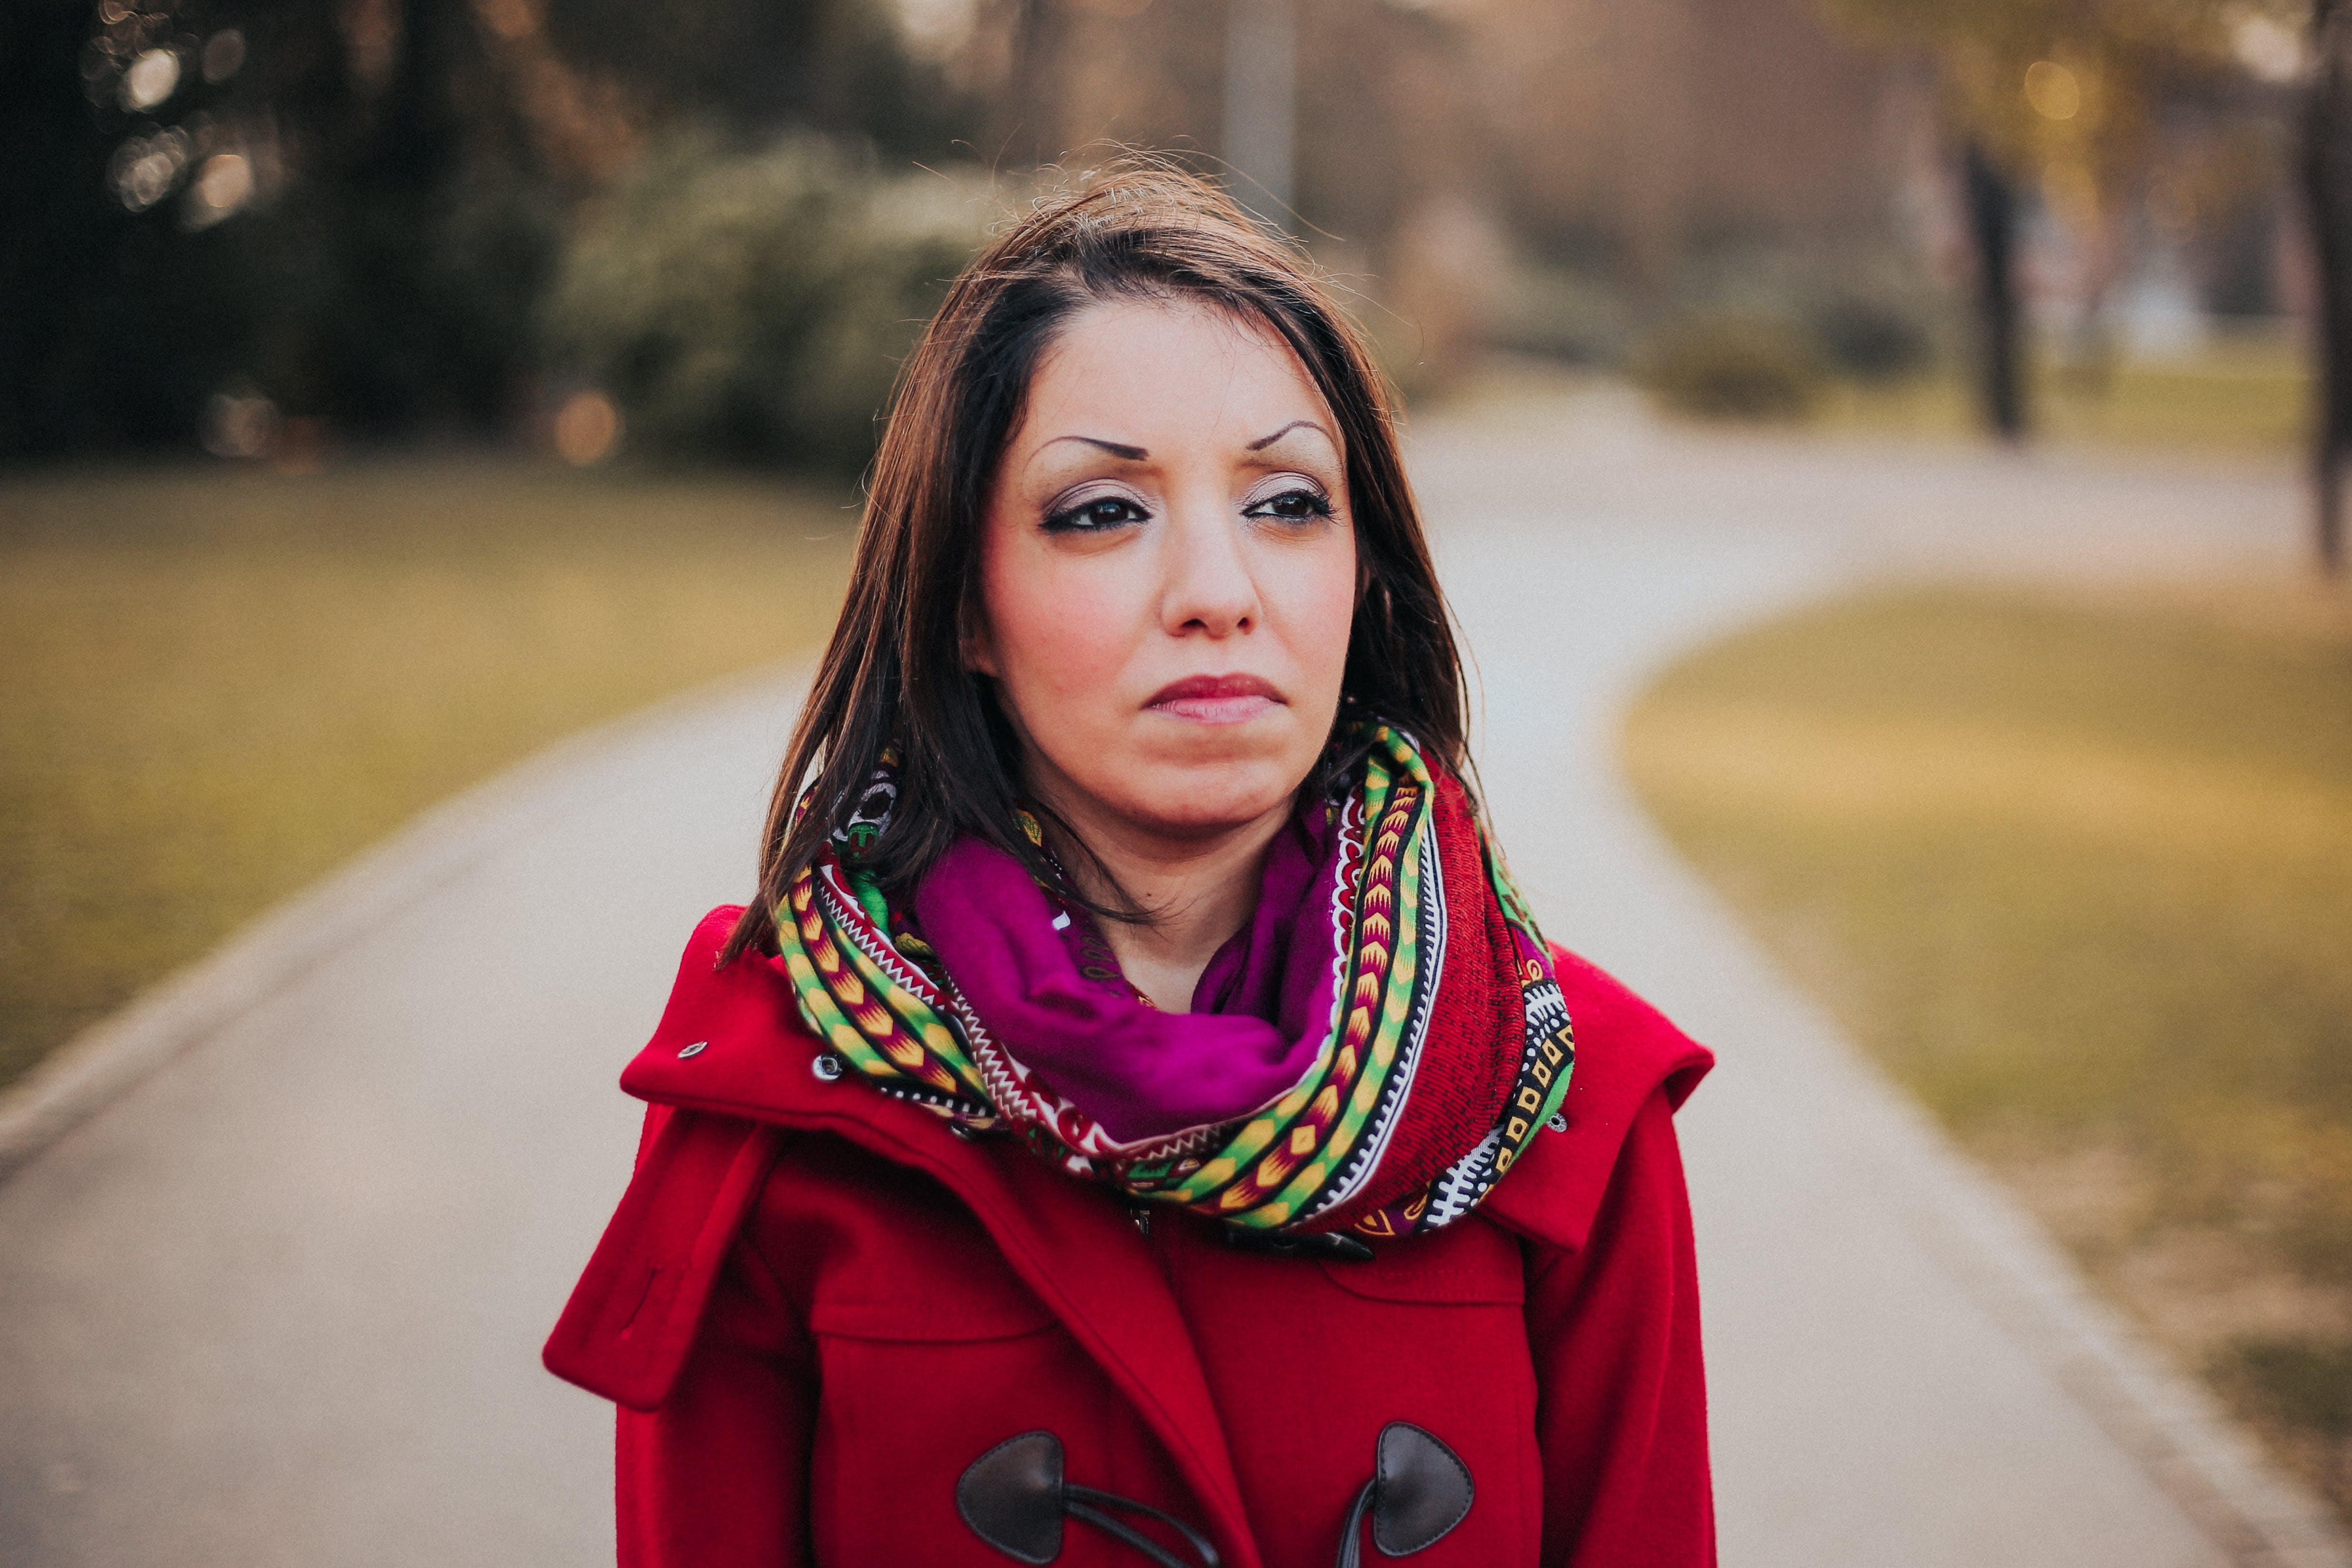 Woman Wearing Red Coat And Scarf